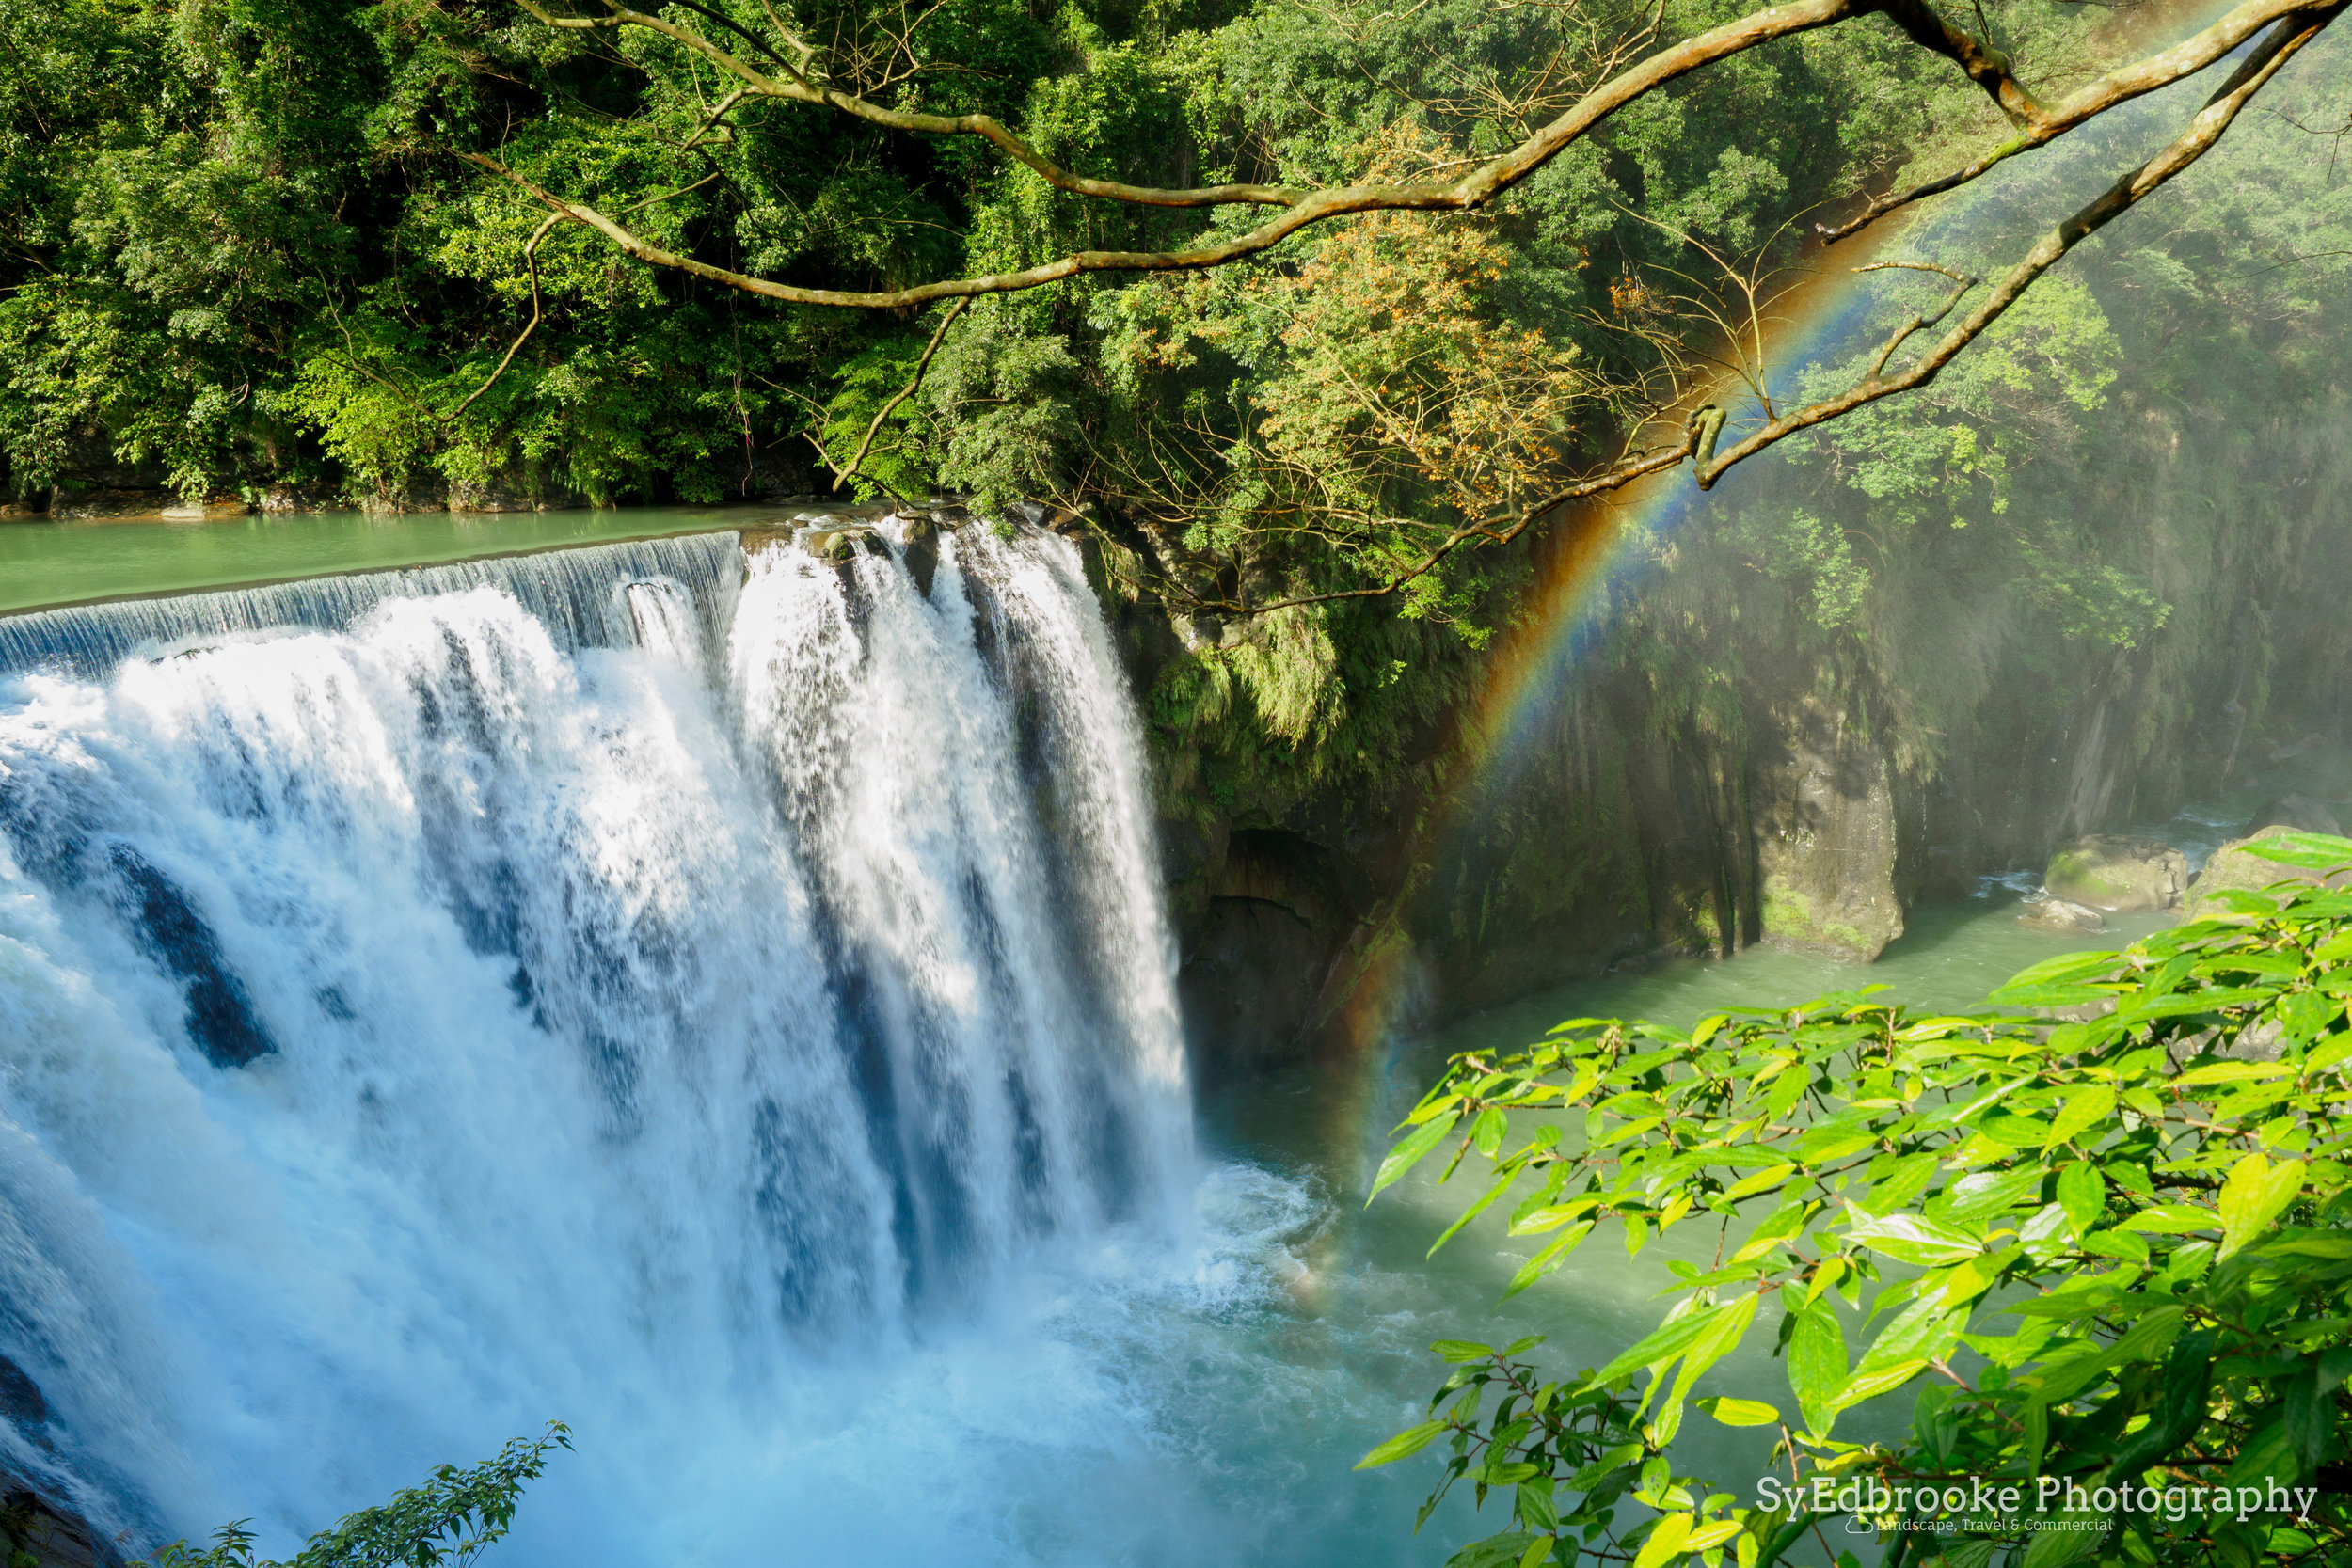 waterfall rainbow. 24mm, ISO 64, f7.1, 1/50